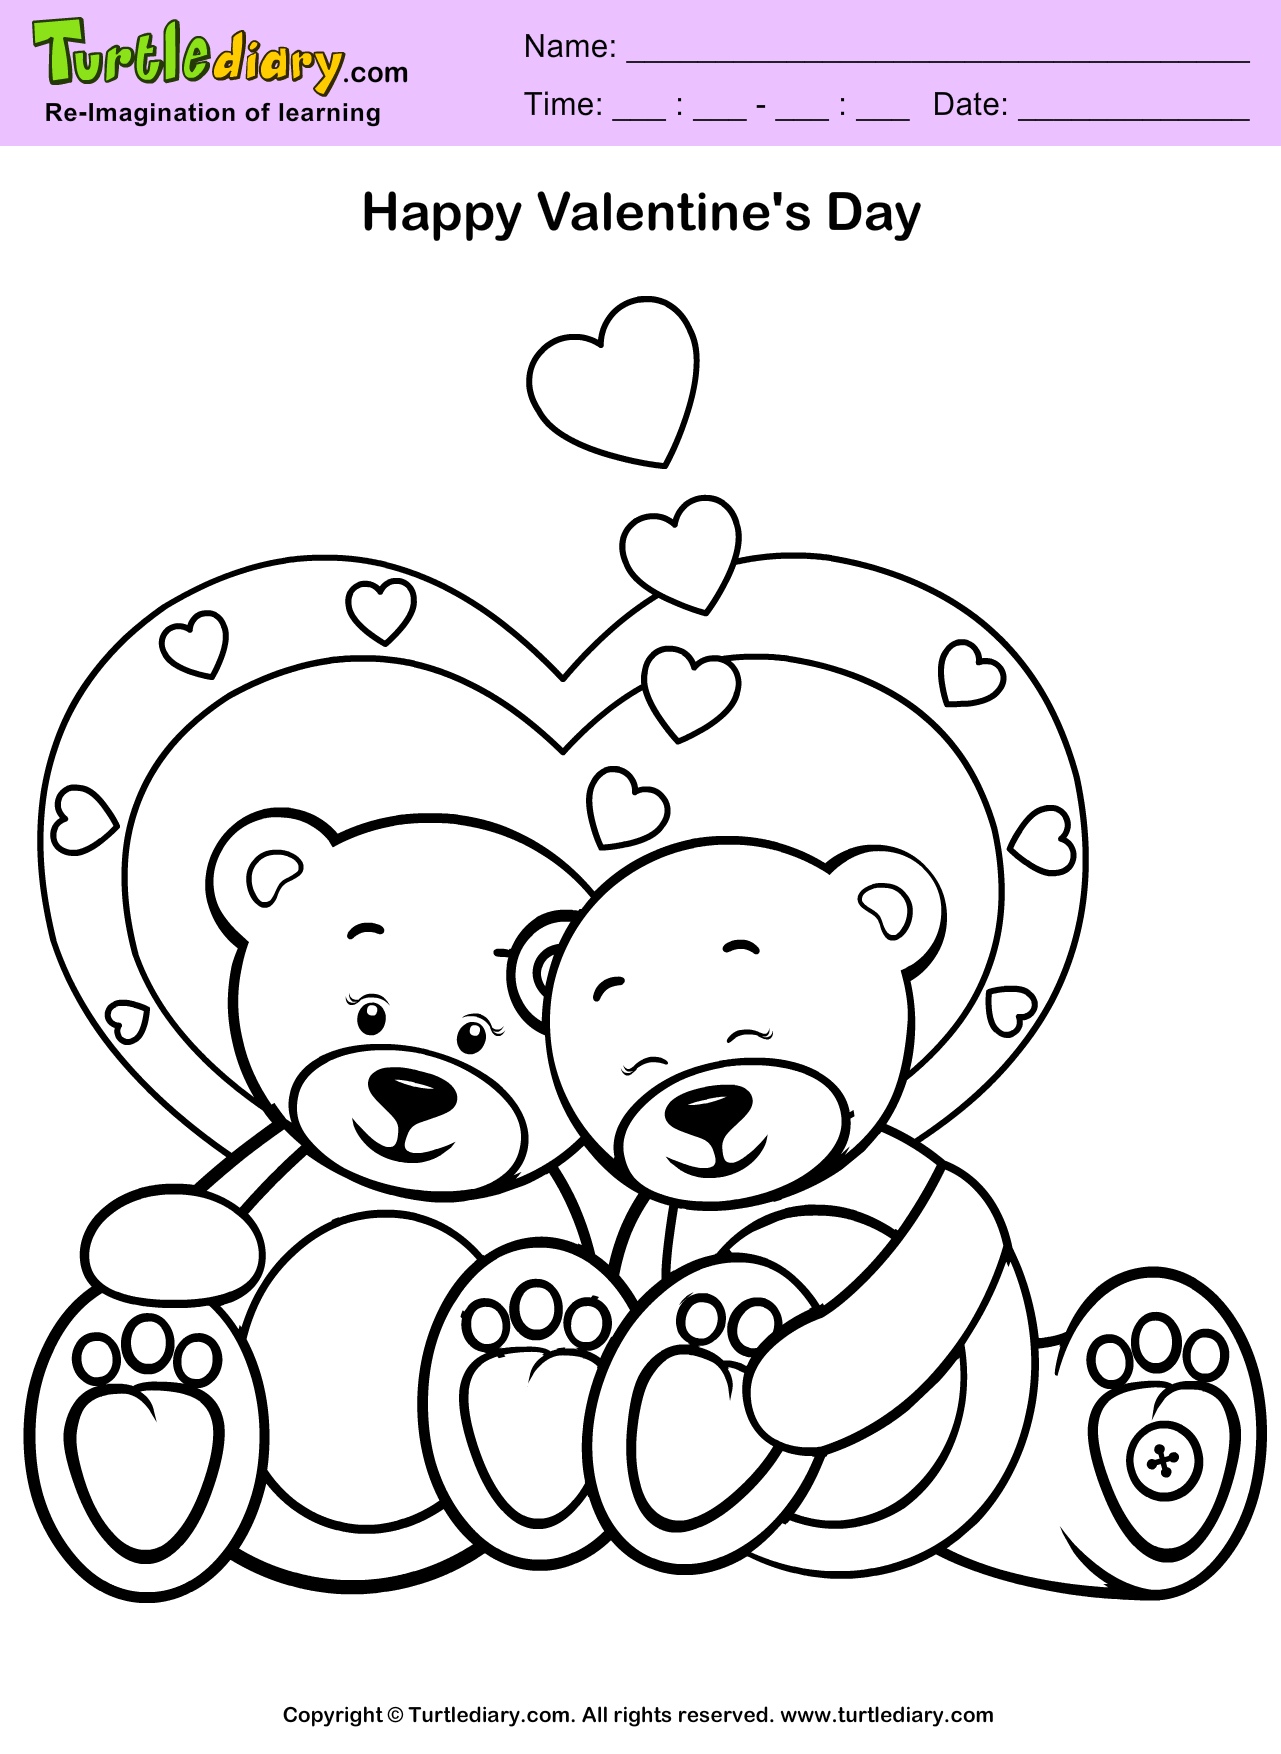 Cartoon Teddy Bear Coloring Pages Alltoys for